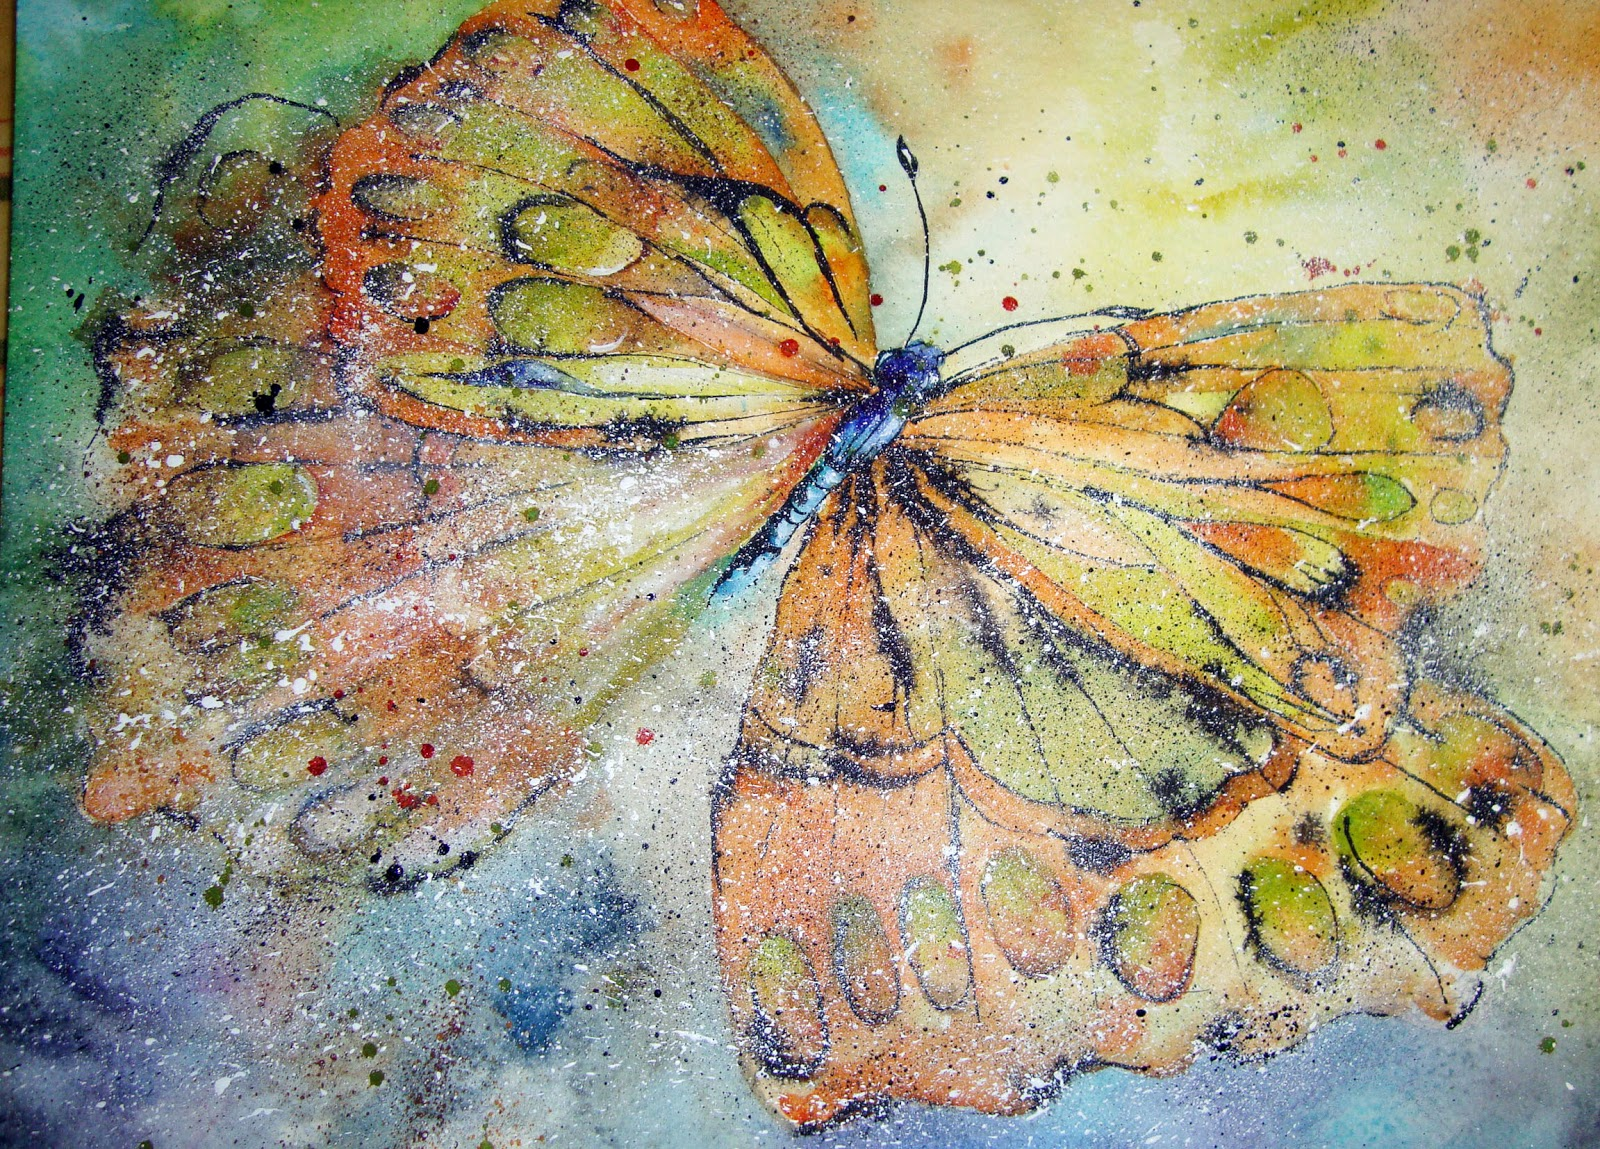 Famous butterfly paintings - photo#27